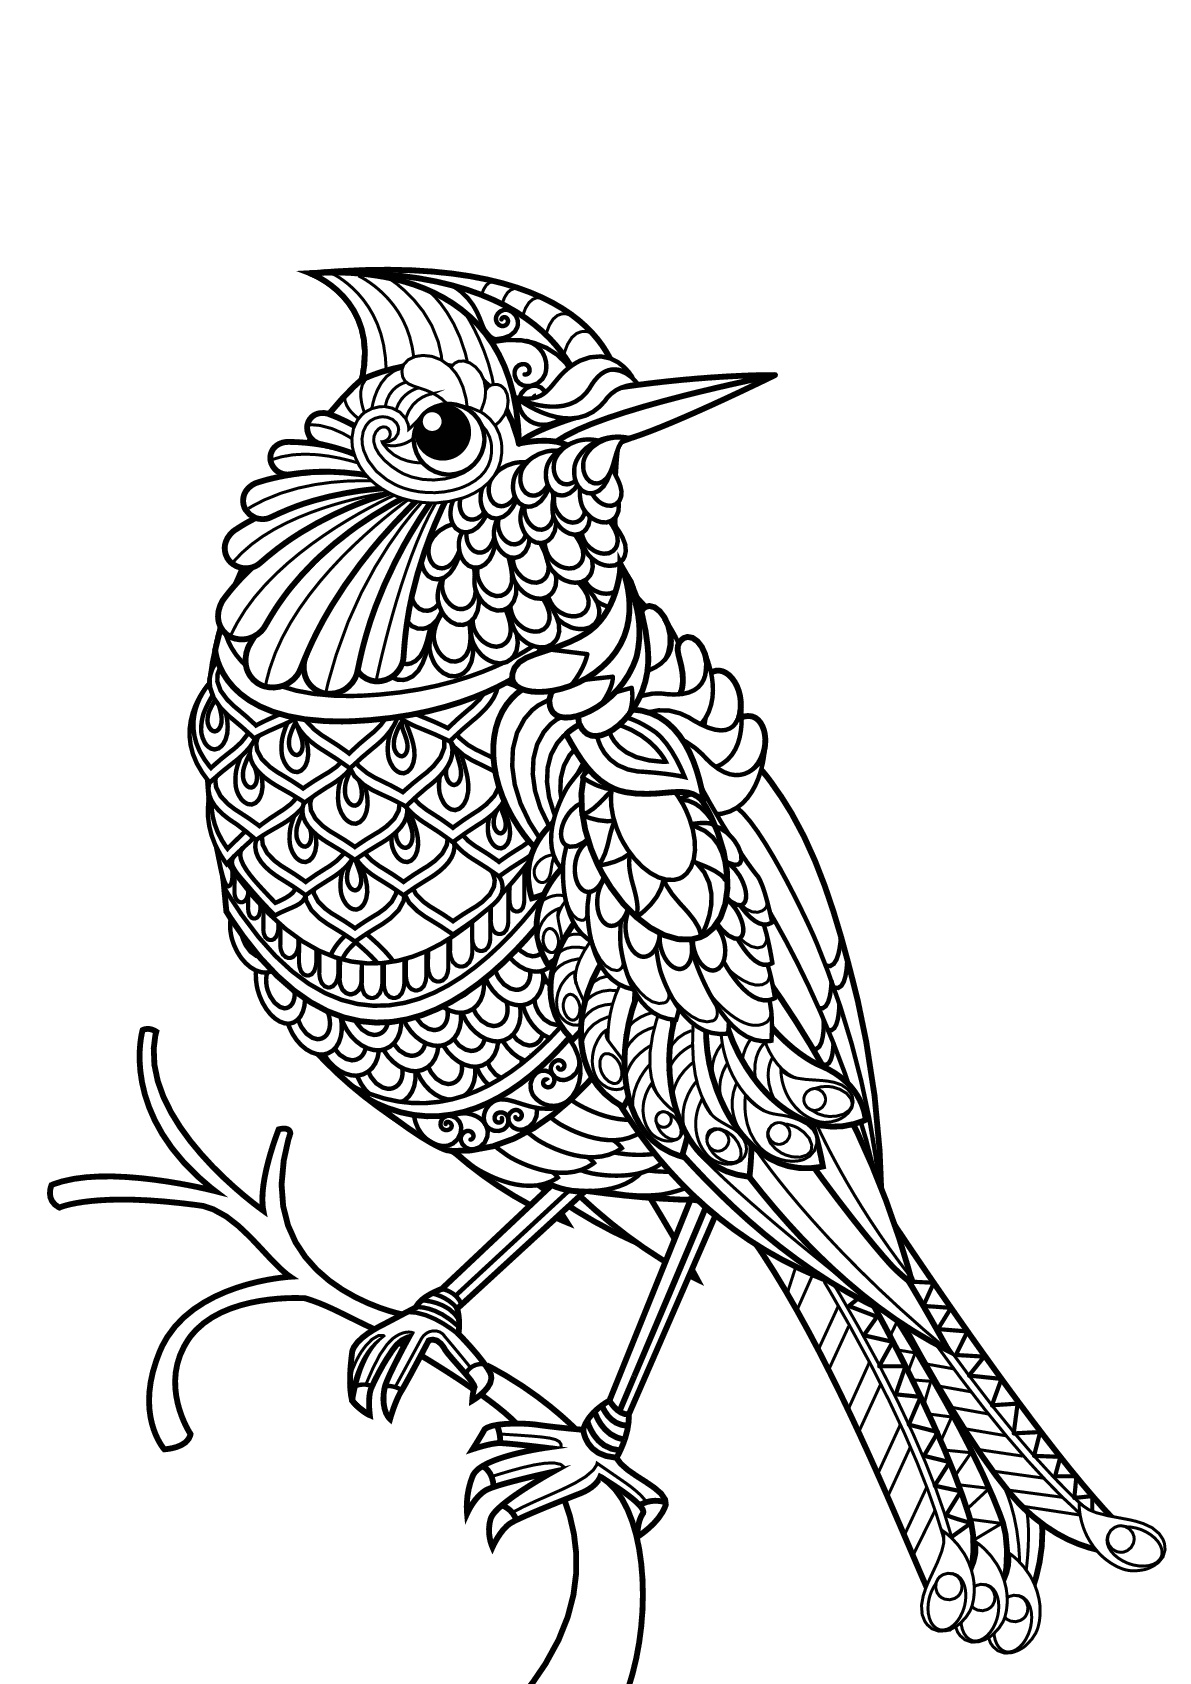 bird colouring pages for kids cute bird coloring pages for kids pages bird colouring